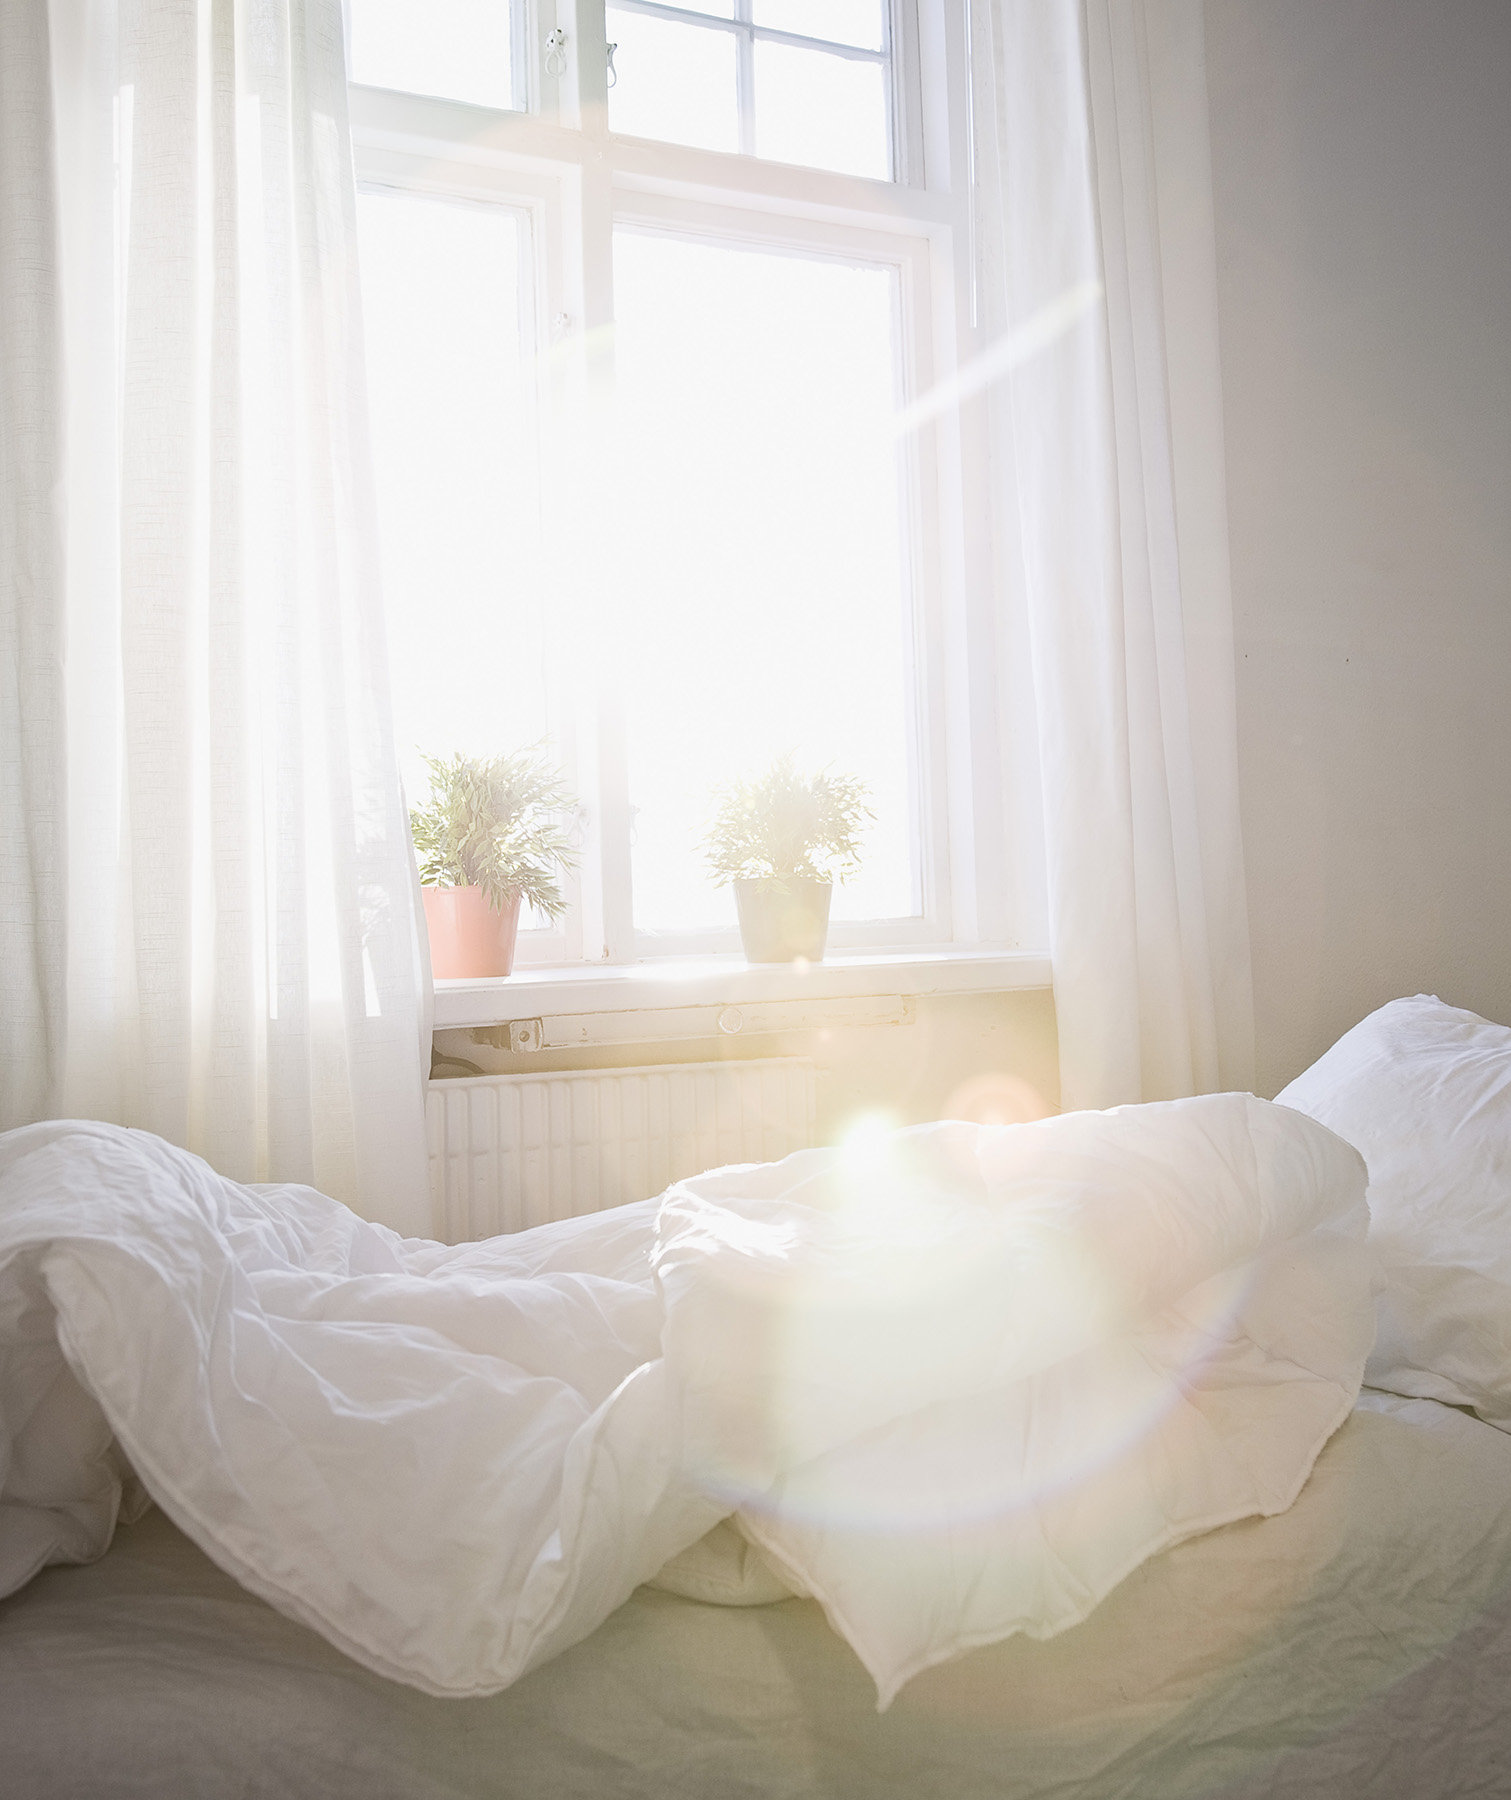 morning-light-bedroom-window